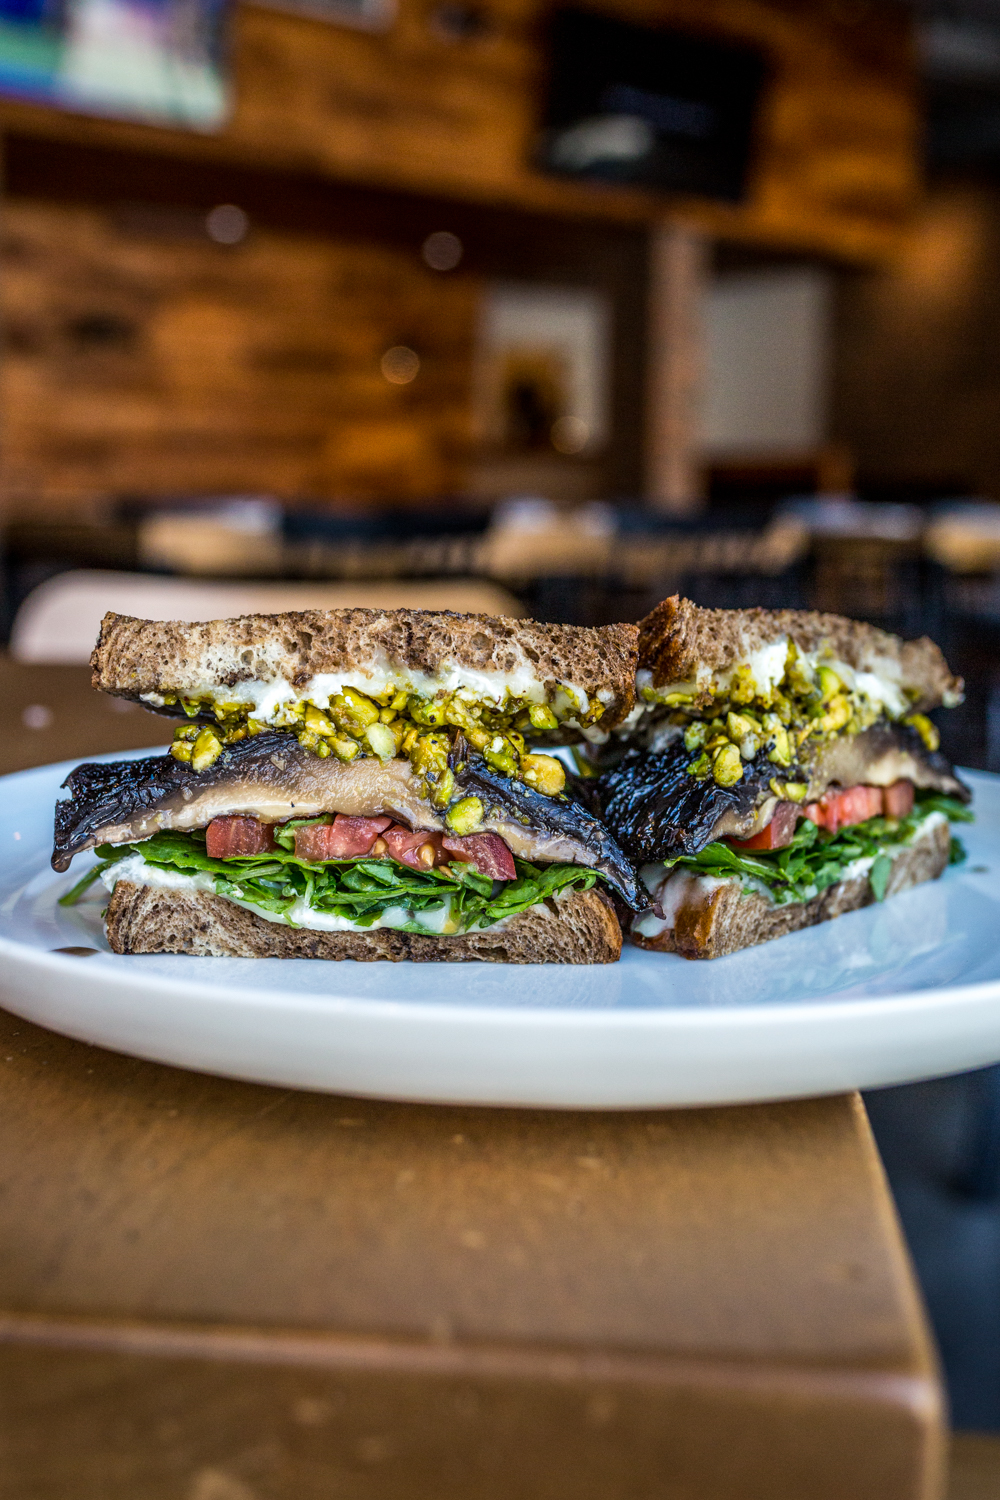 Portabella Melt: over roasted portabella mushroom on local grilled rye with arugula, Roma tomato slices, tangy goat cheese, parlor blend cheese, and pistachio pesto / Image: Catherine Viox // Published: 10.10.19